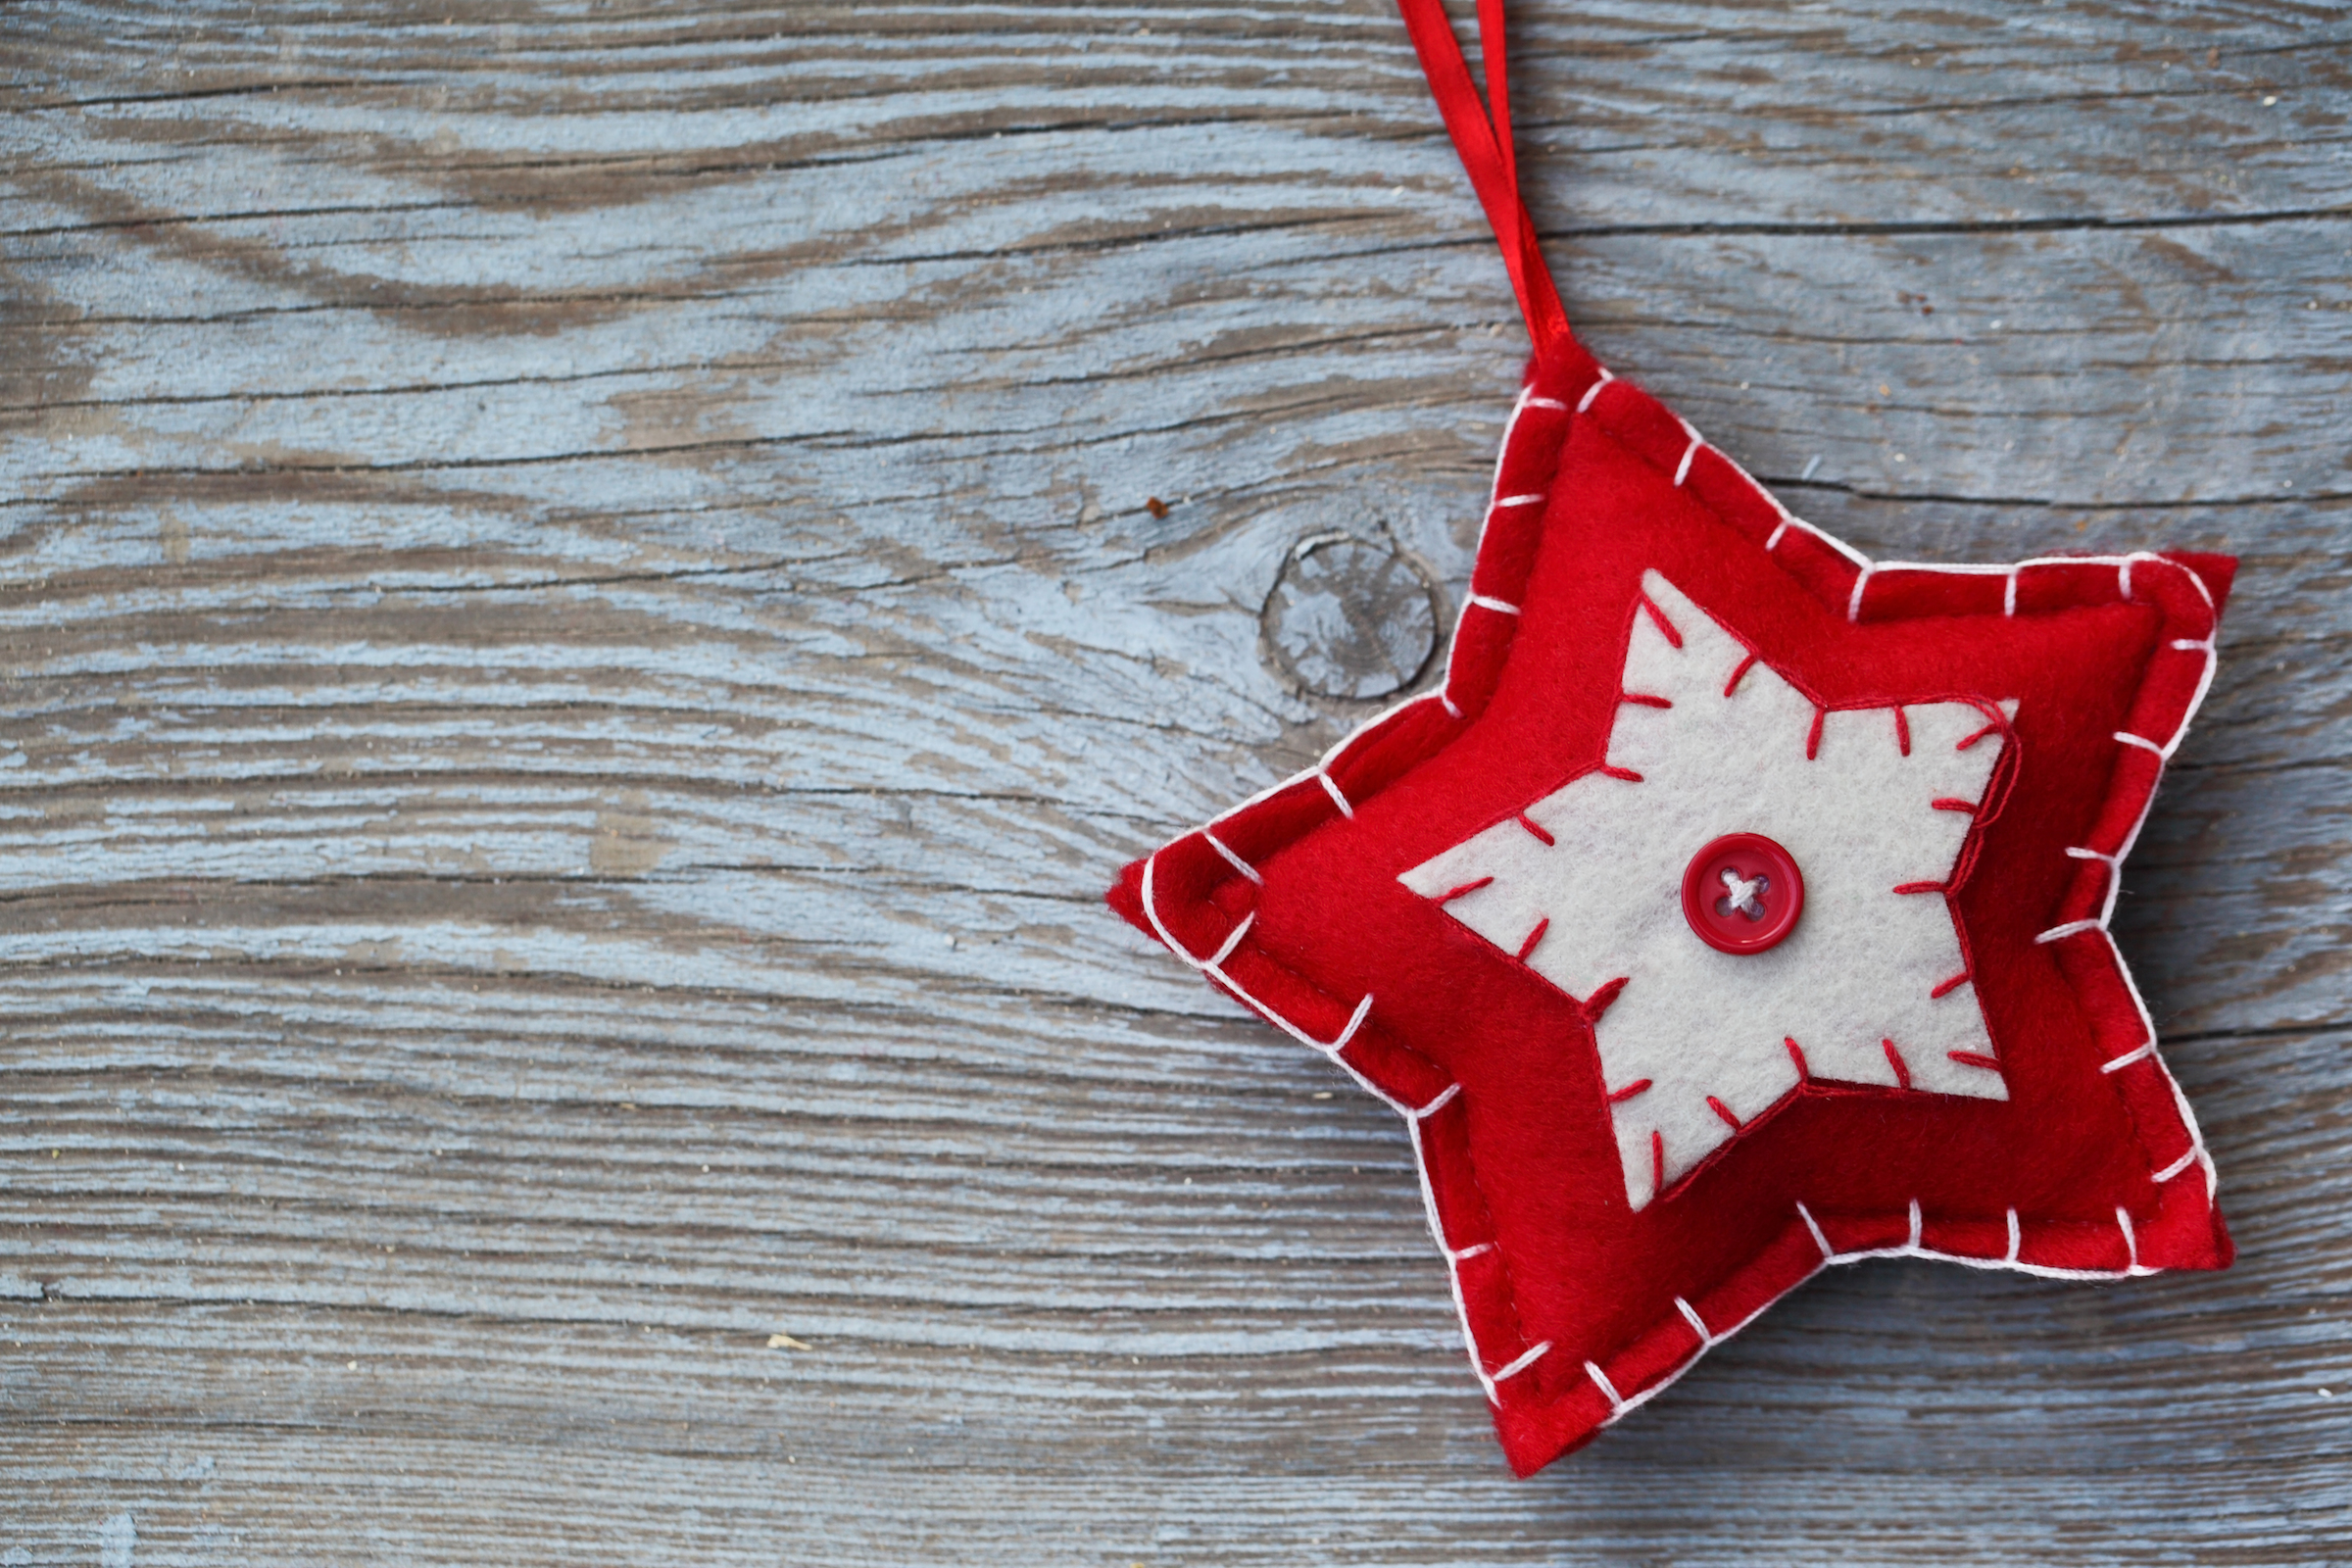 5 Easy Handmade Ornaments for Your Christmas Tree